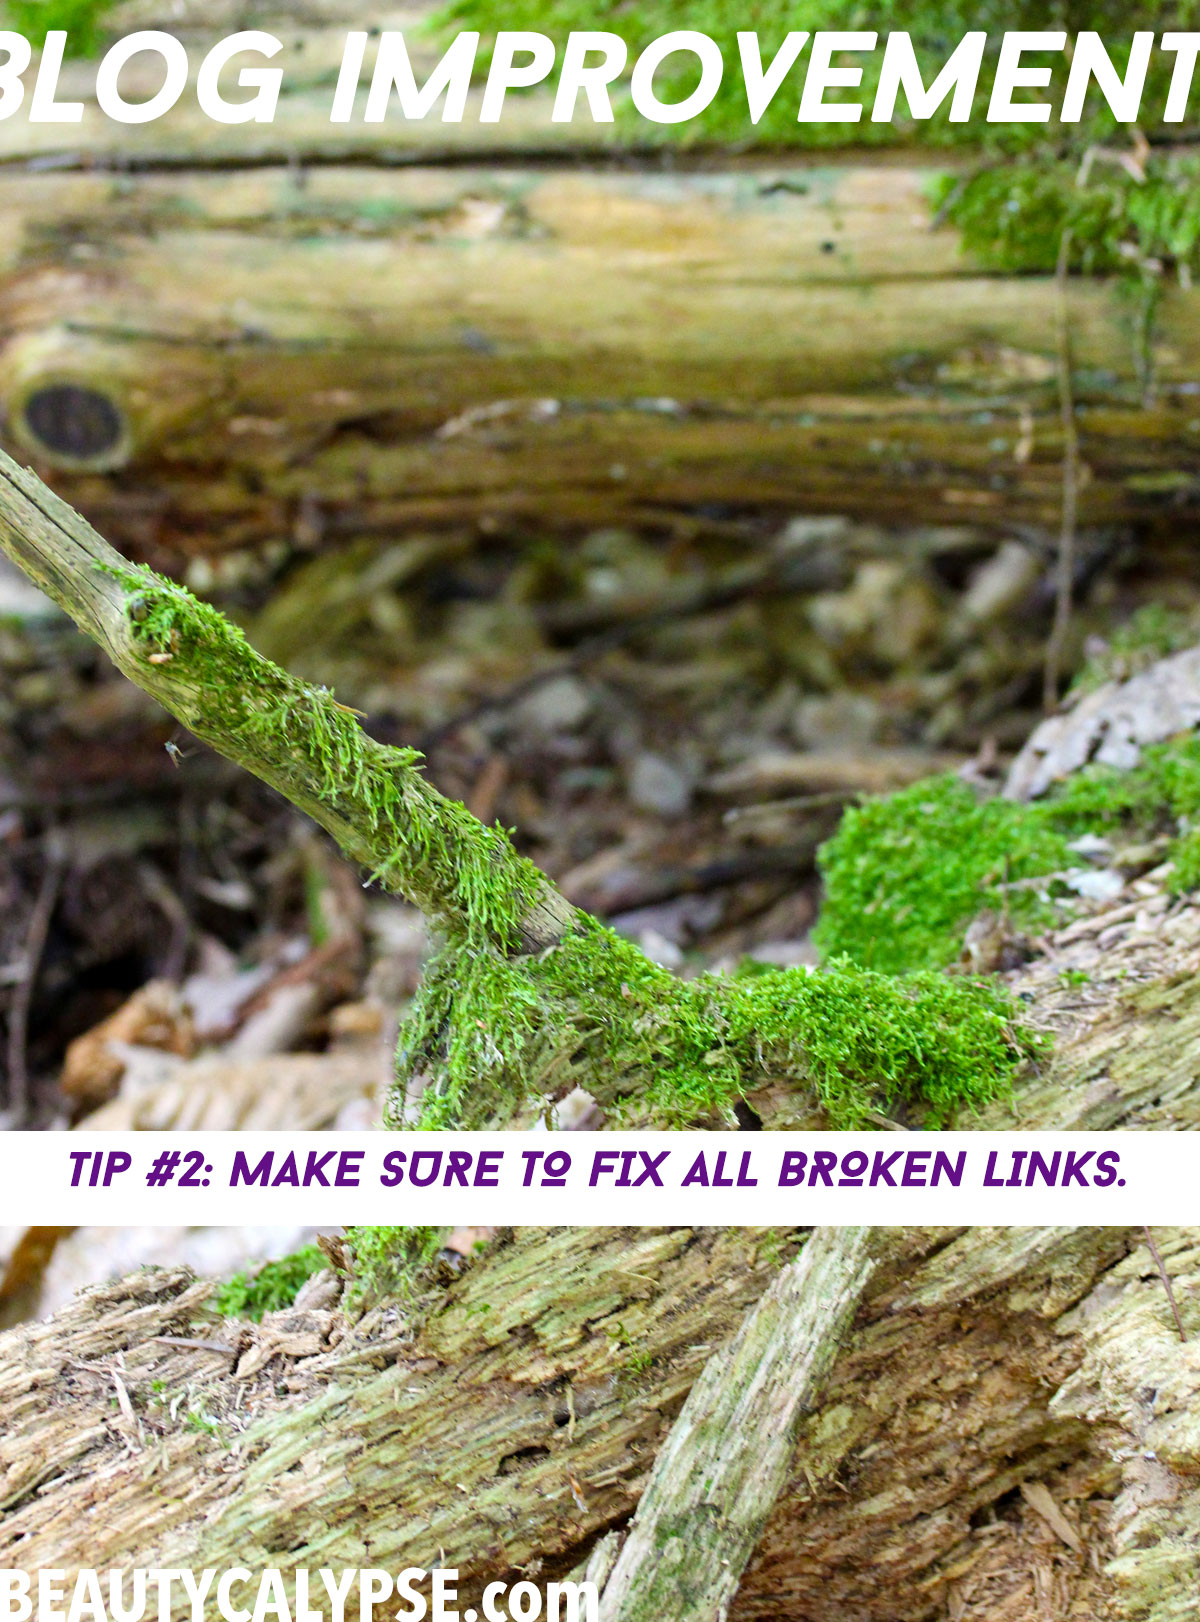 blog-improvement-fix-broken-links